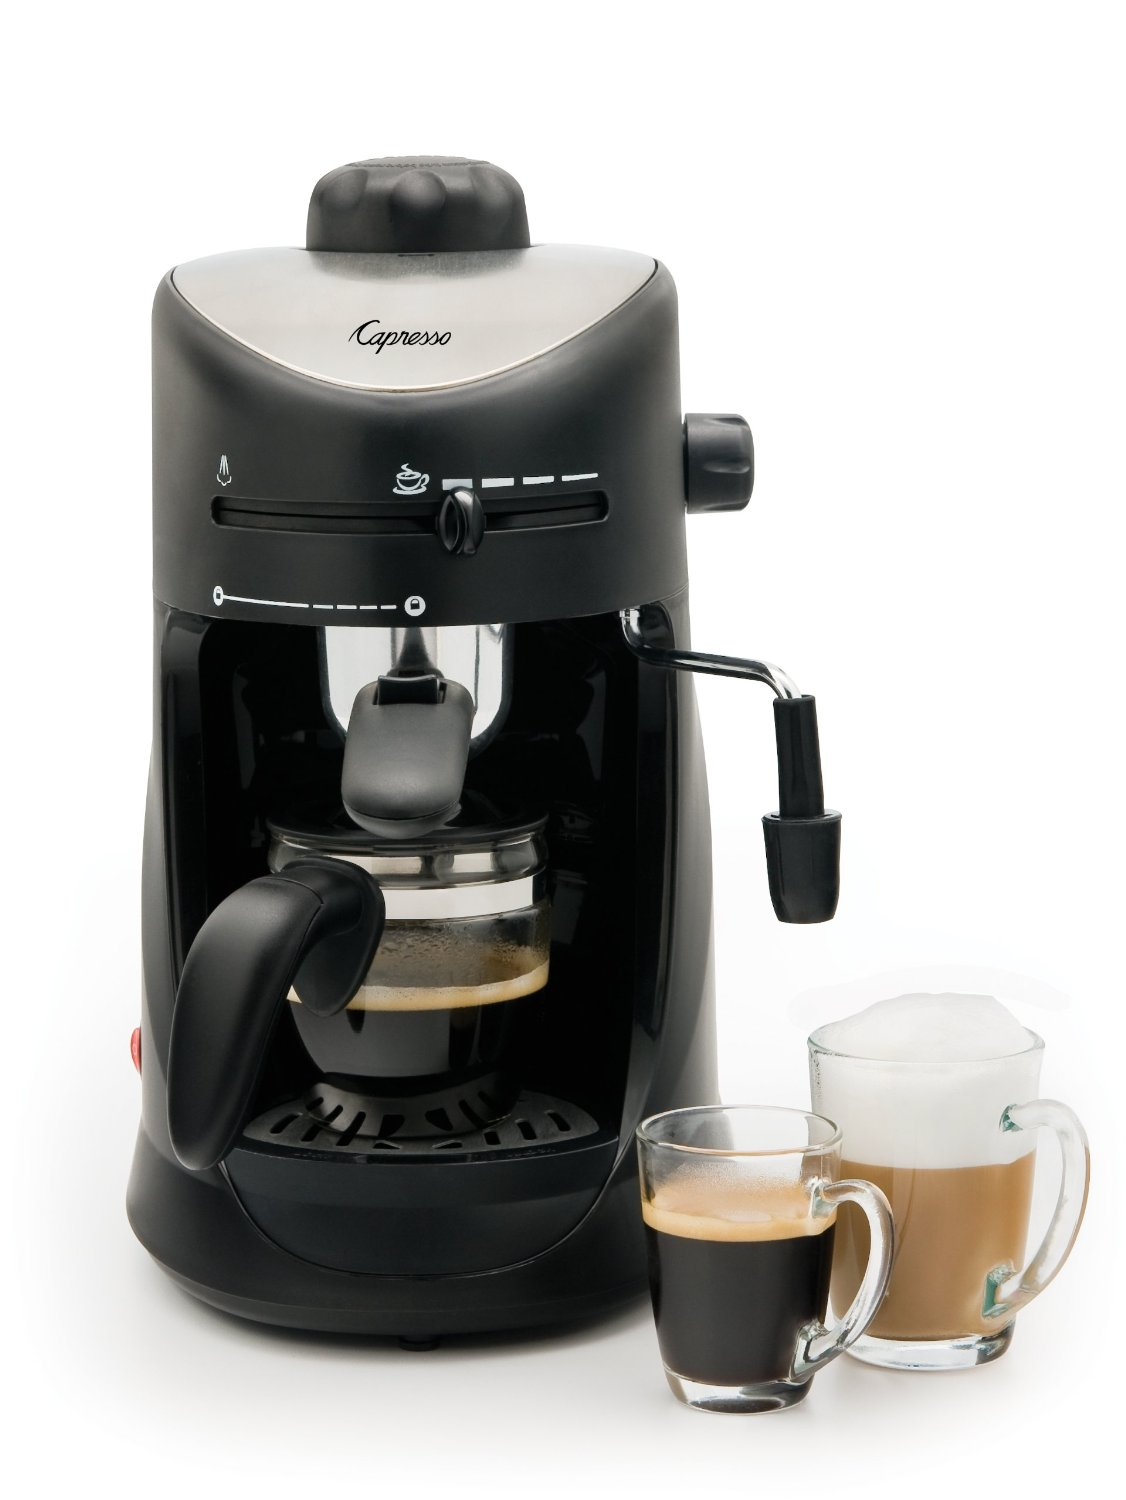 10 Best Cappuccino Maker Reviews — Enjoy Delicious Cappuccinos in 2020!